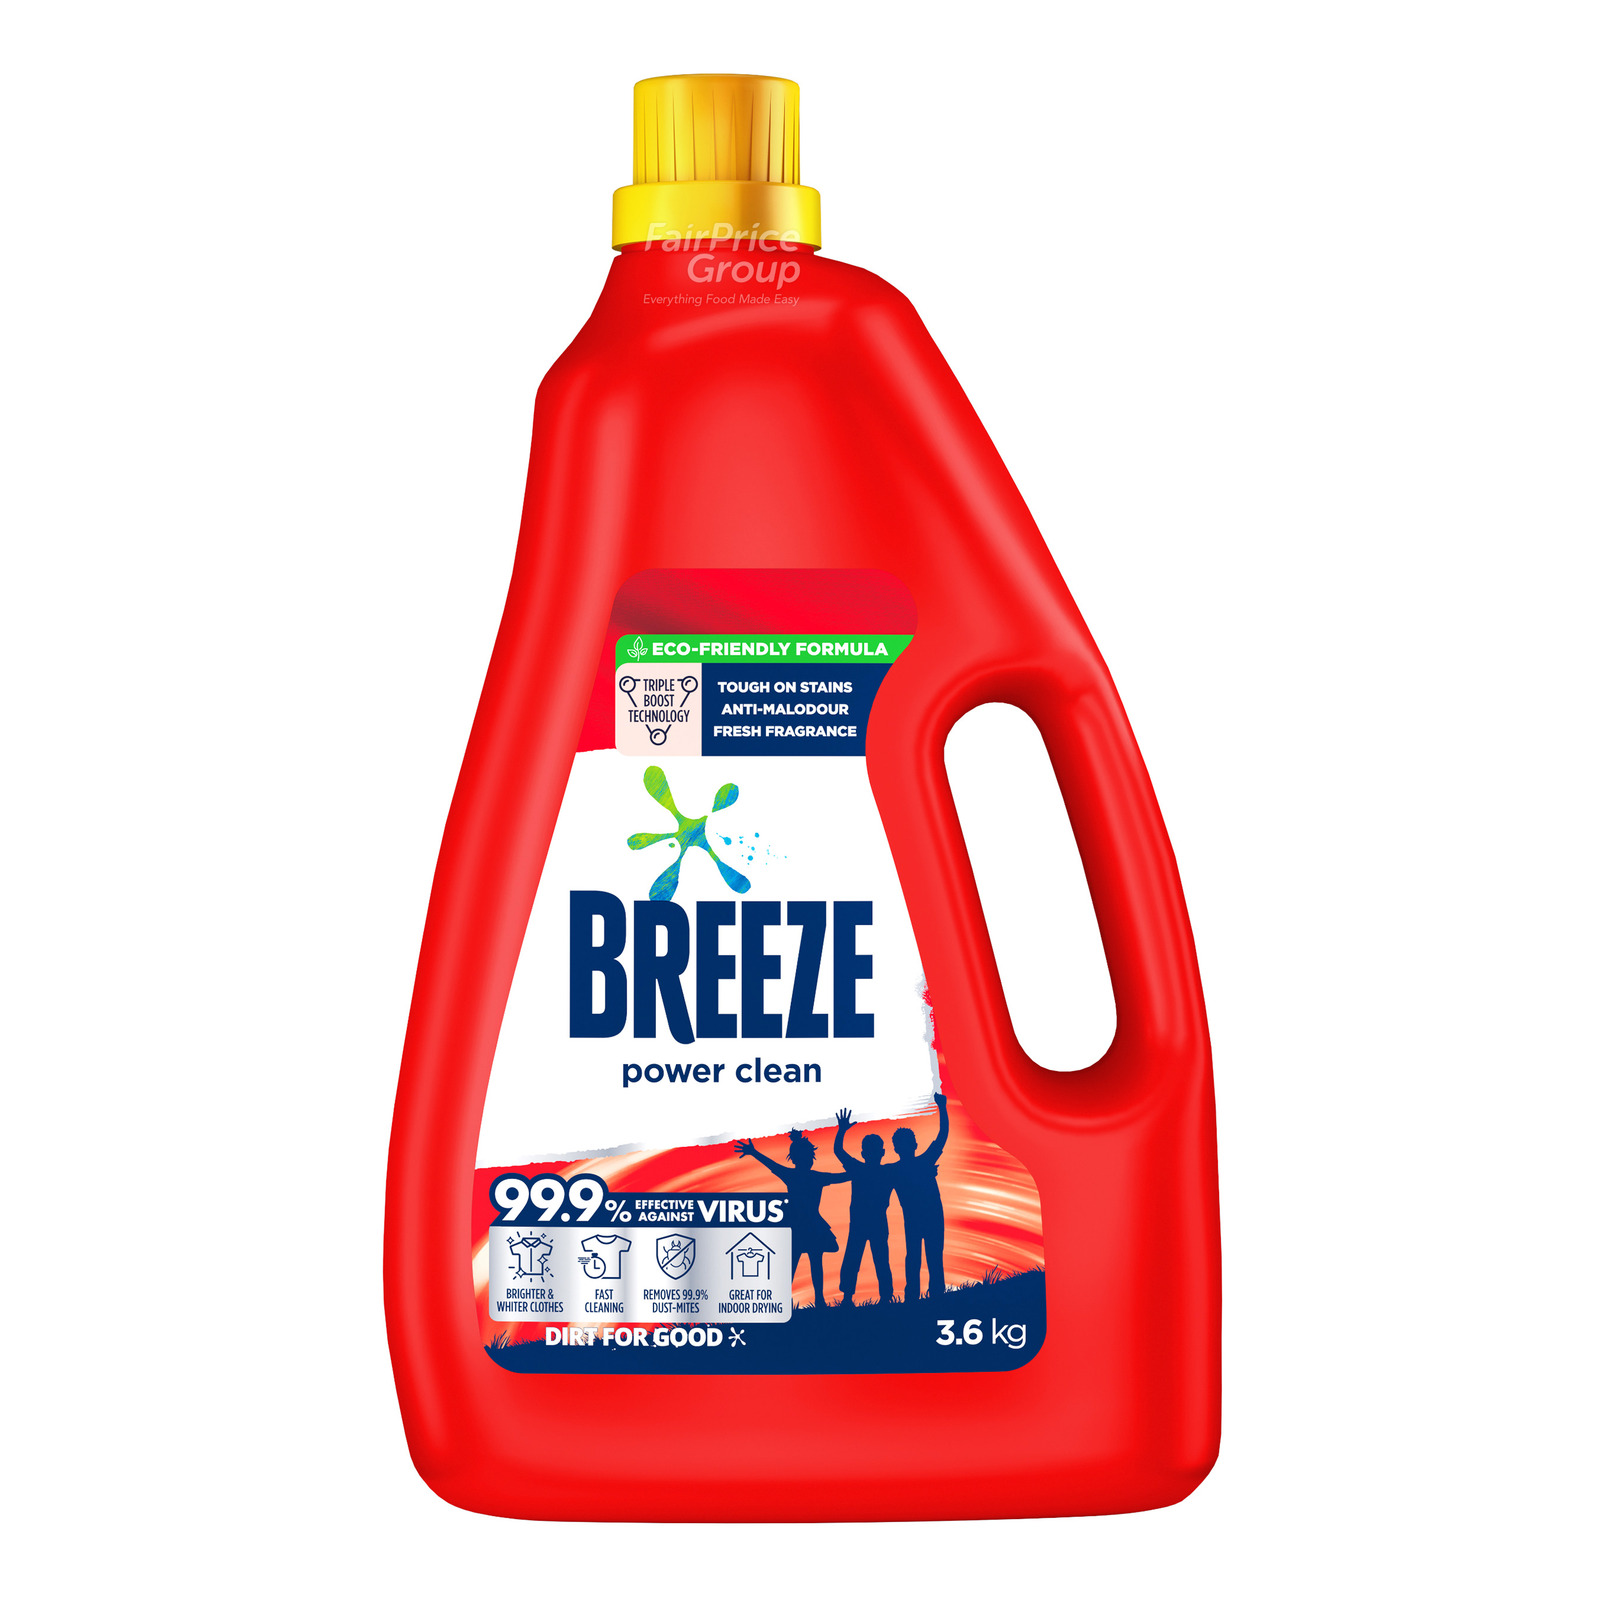 Breeze Liquid Detergent - Power Clean